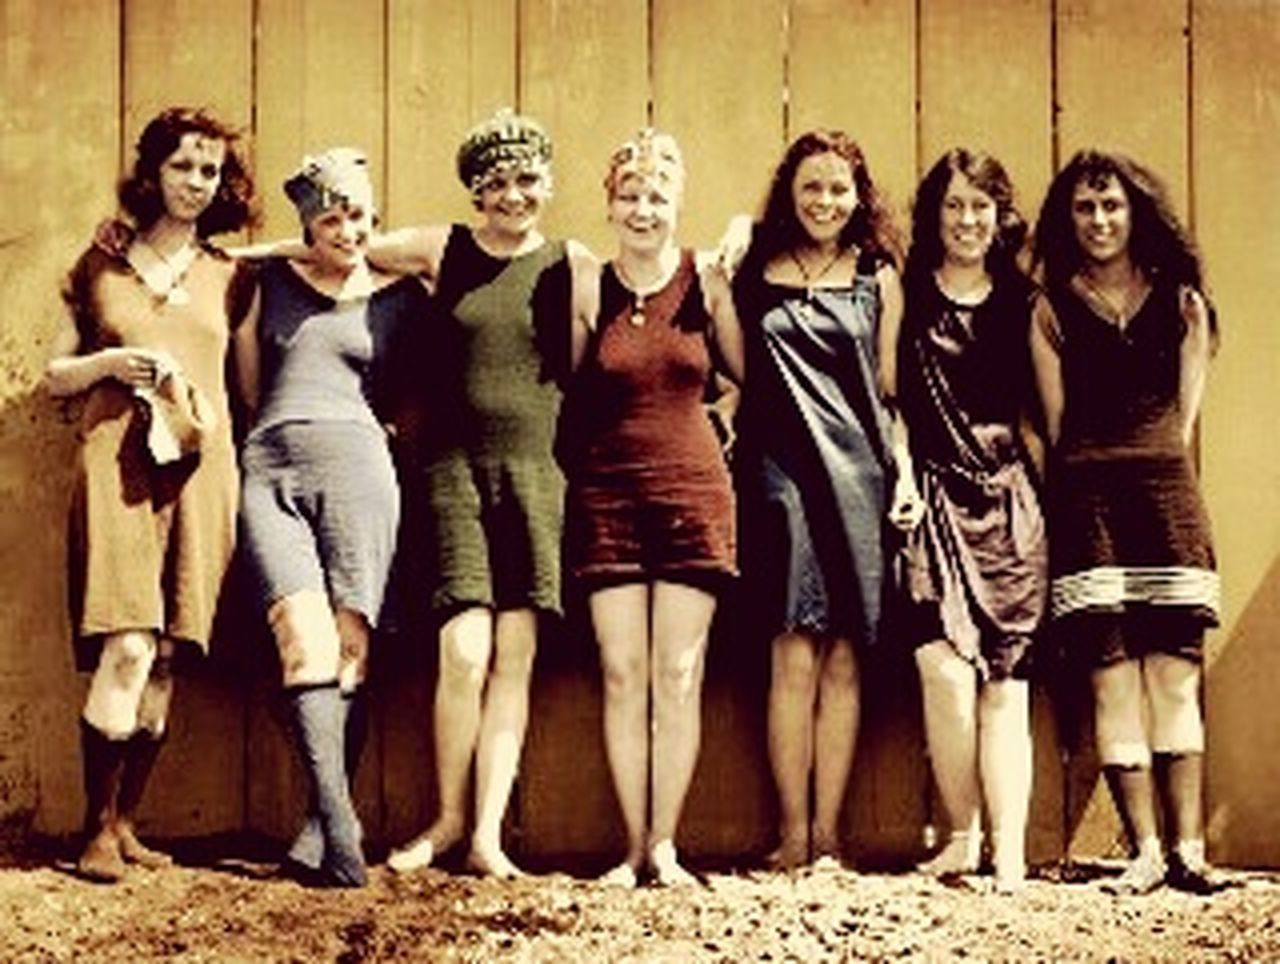 friendship, looking at camera, portrait, full length, front view, togetherness, smiling, fashion, adult, happiness, standing, people, adults only, community, cheerful, day, outdoors, only women, teamwork, young adult